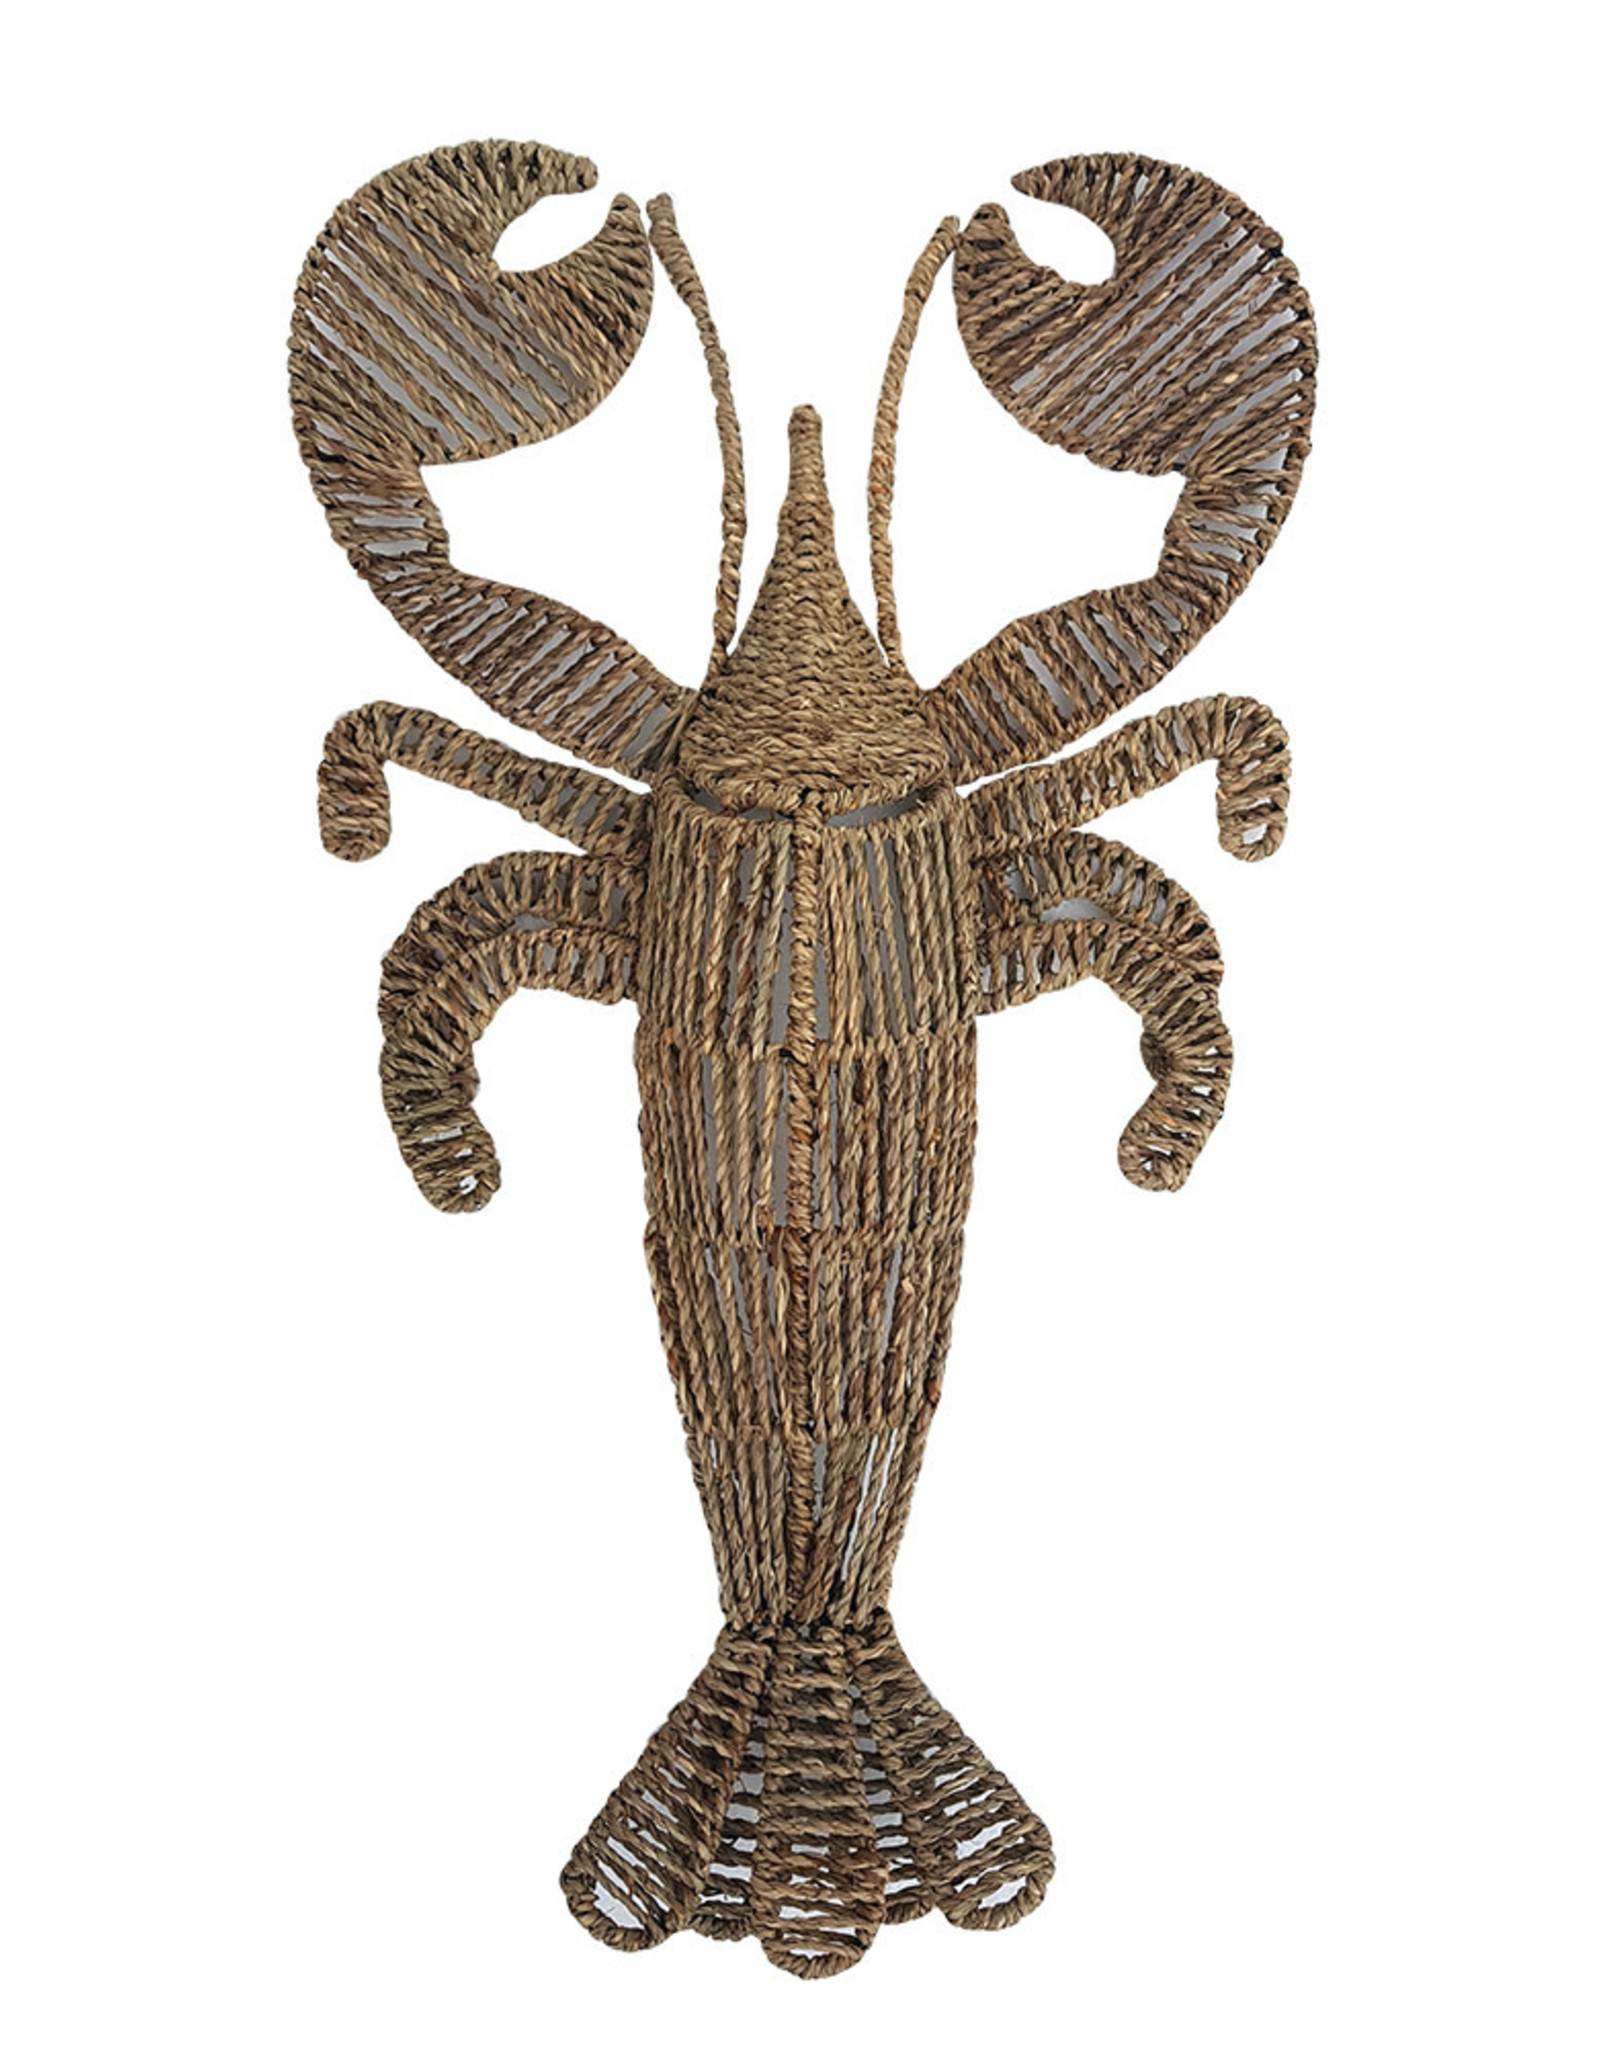 LOBSTER WOVEN WALL HANGING 40x70cm